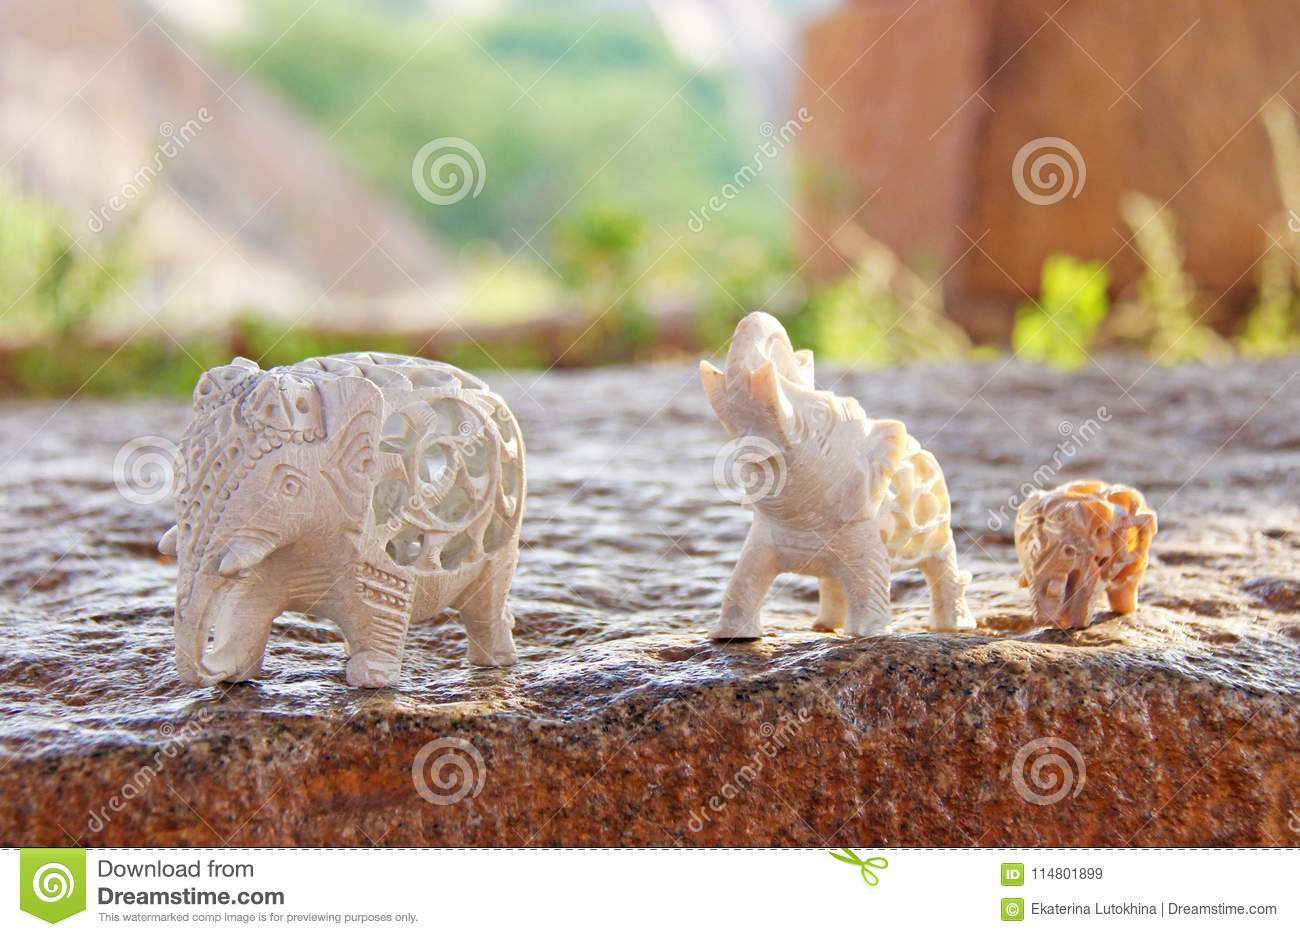 Elephants Of Carved Bone Souvenir Stock Image Image Of Carved Isolated 114801899